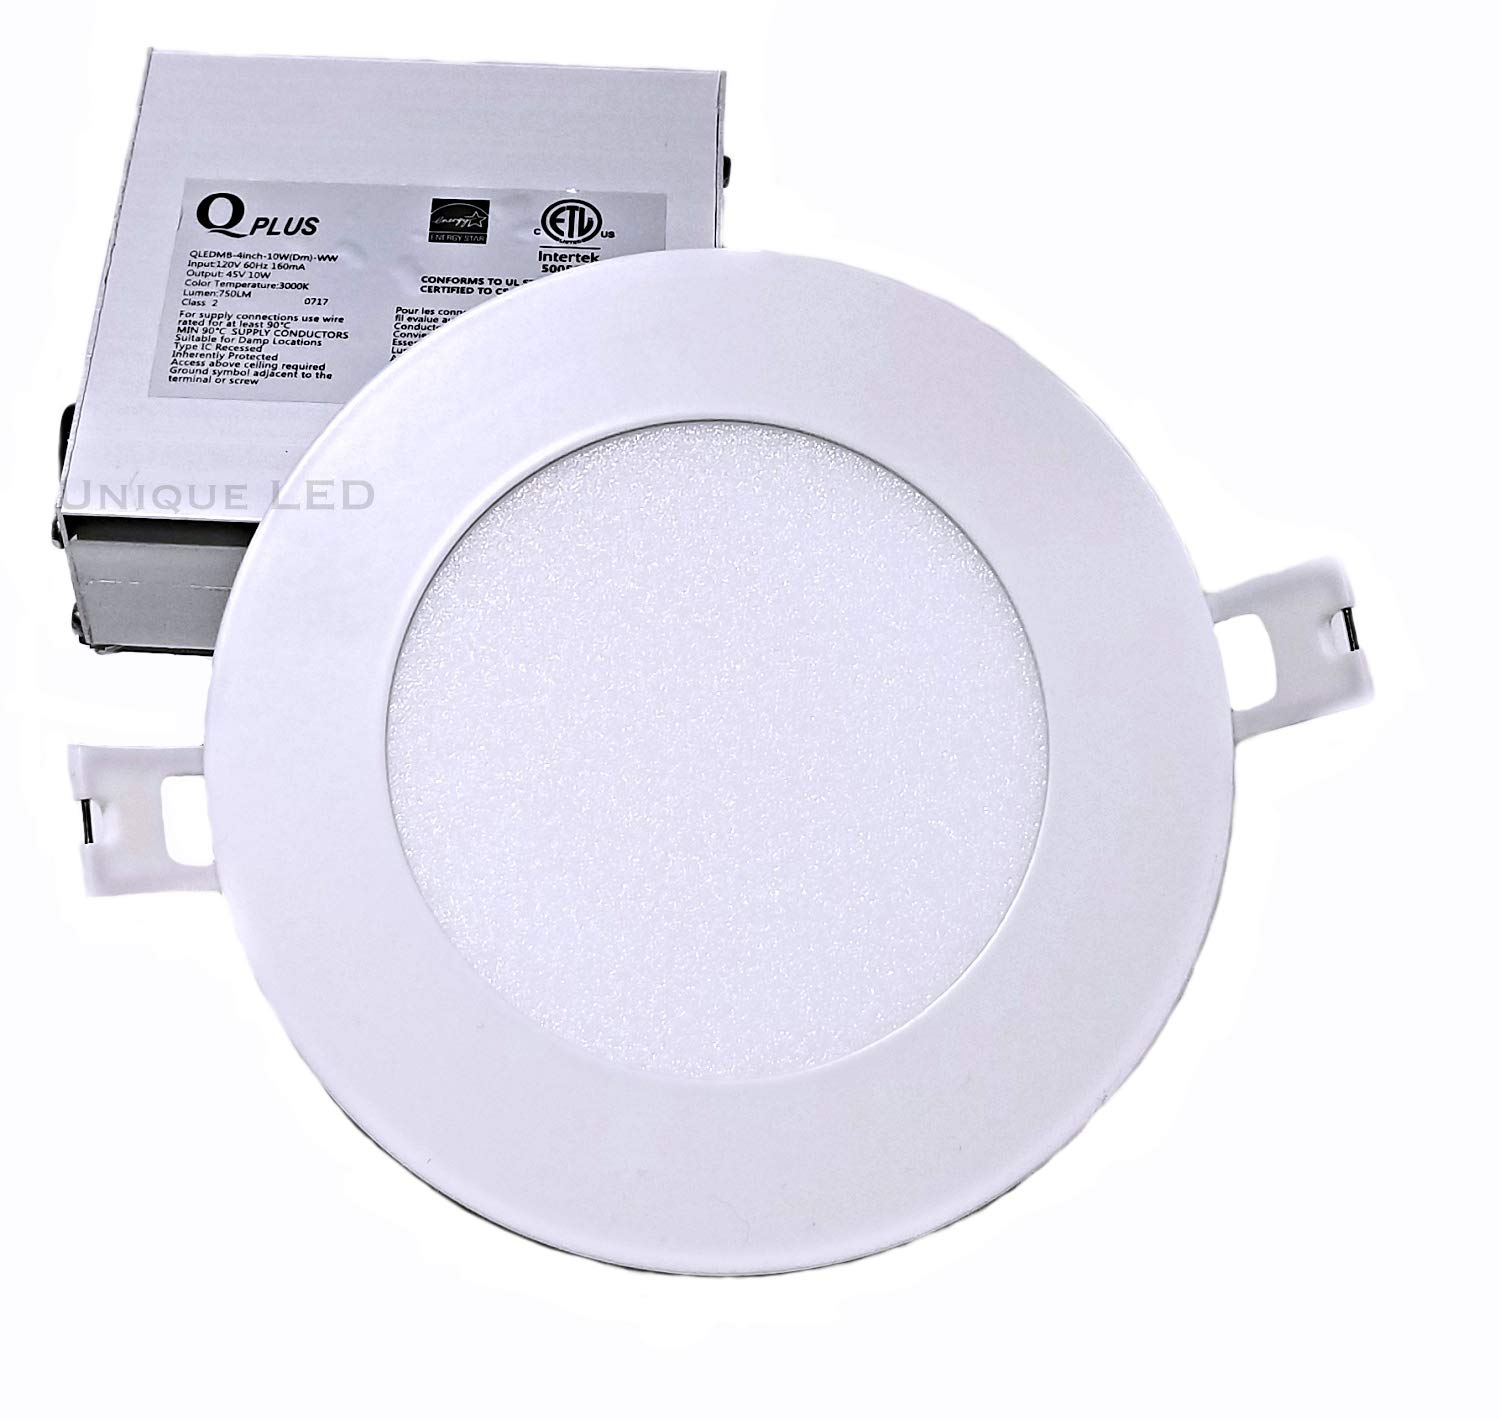 Qplus, Pack of 12: 4 LED Pot Light, 10 Watt 750 Lumens, 5000K, Dimmable, Safe for Wet Locations, 50 000 Hours, Energy Star Certified, cETLus Listed, Type IC Rated, CSA USD Approved. 5 Year Manufacturer Warranty. (12, 5000K Daylight White)